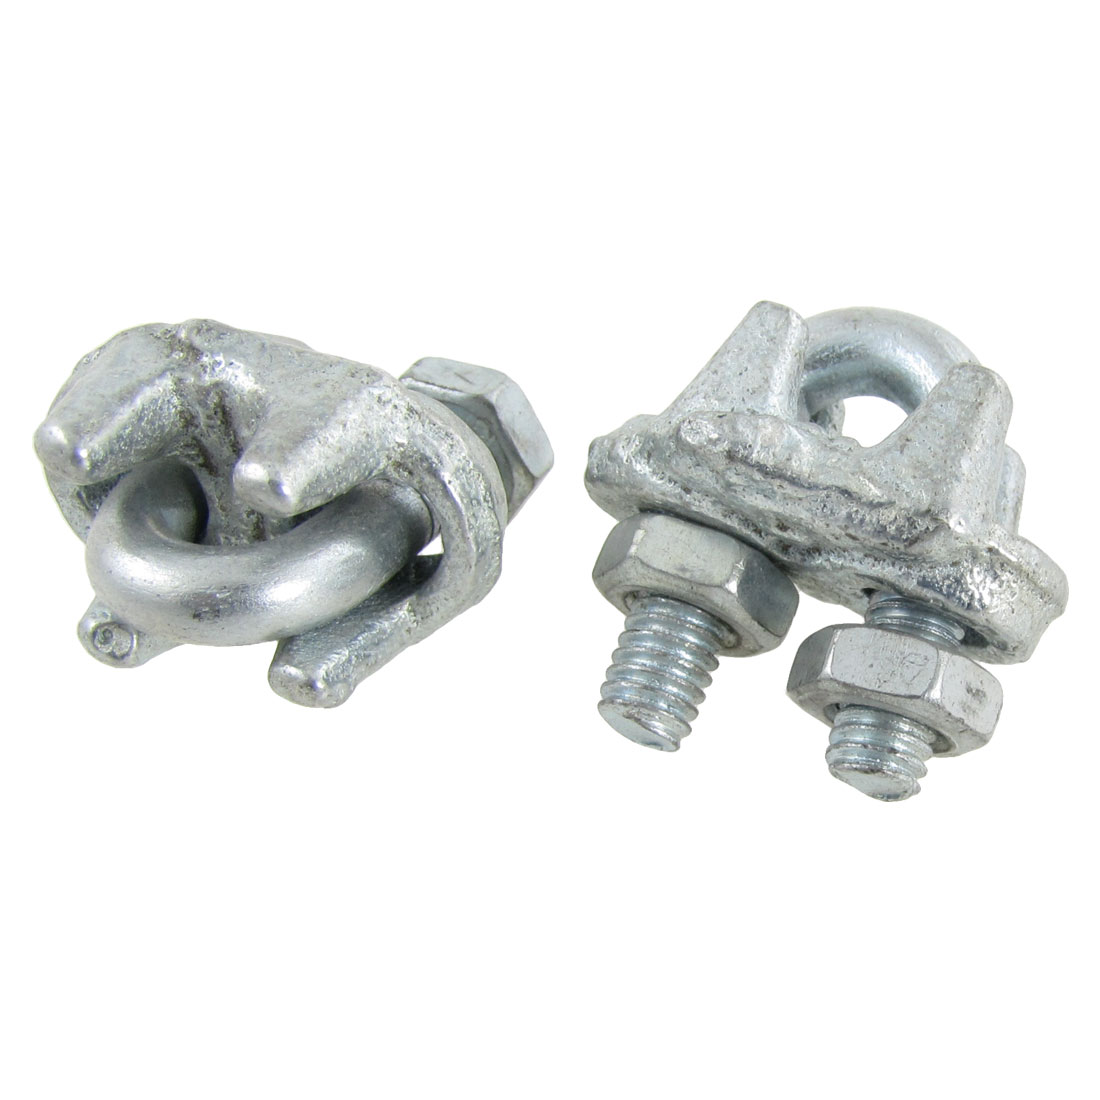 "2 Pcs Metal Malleable 5/16"" Dia Wire Rope Cable Clip Clamp"